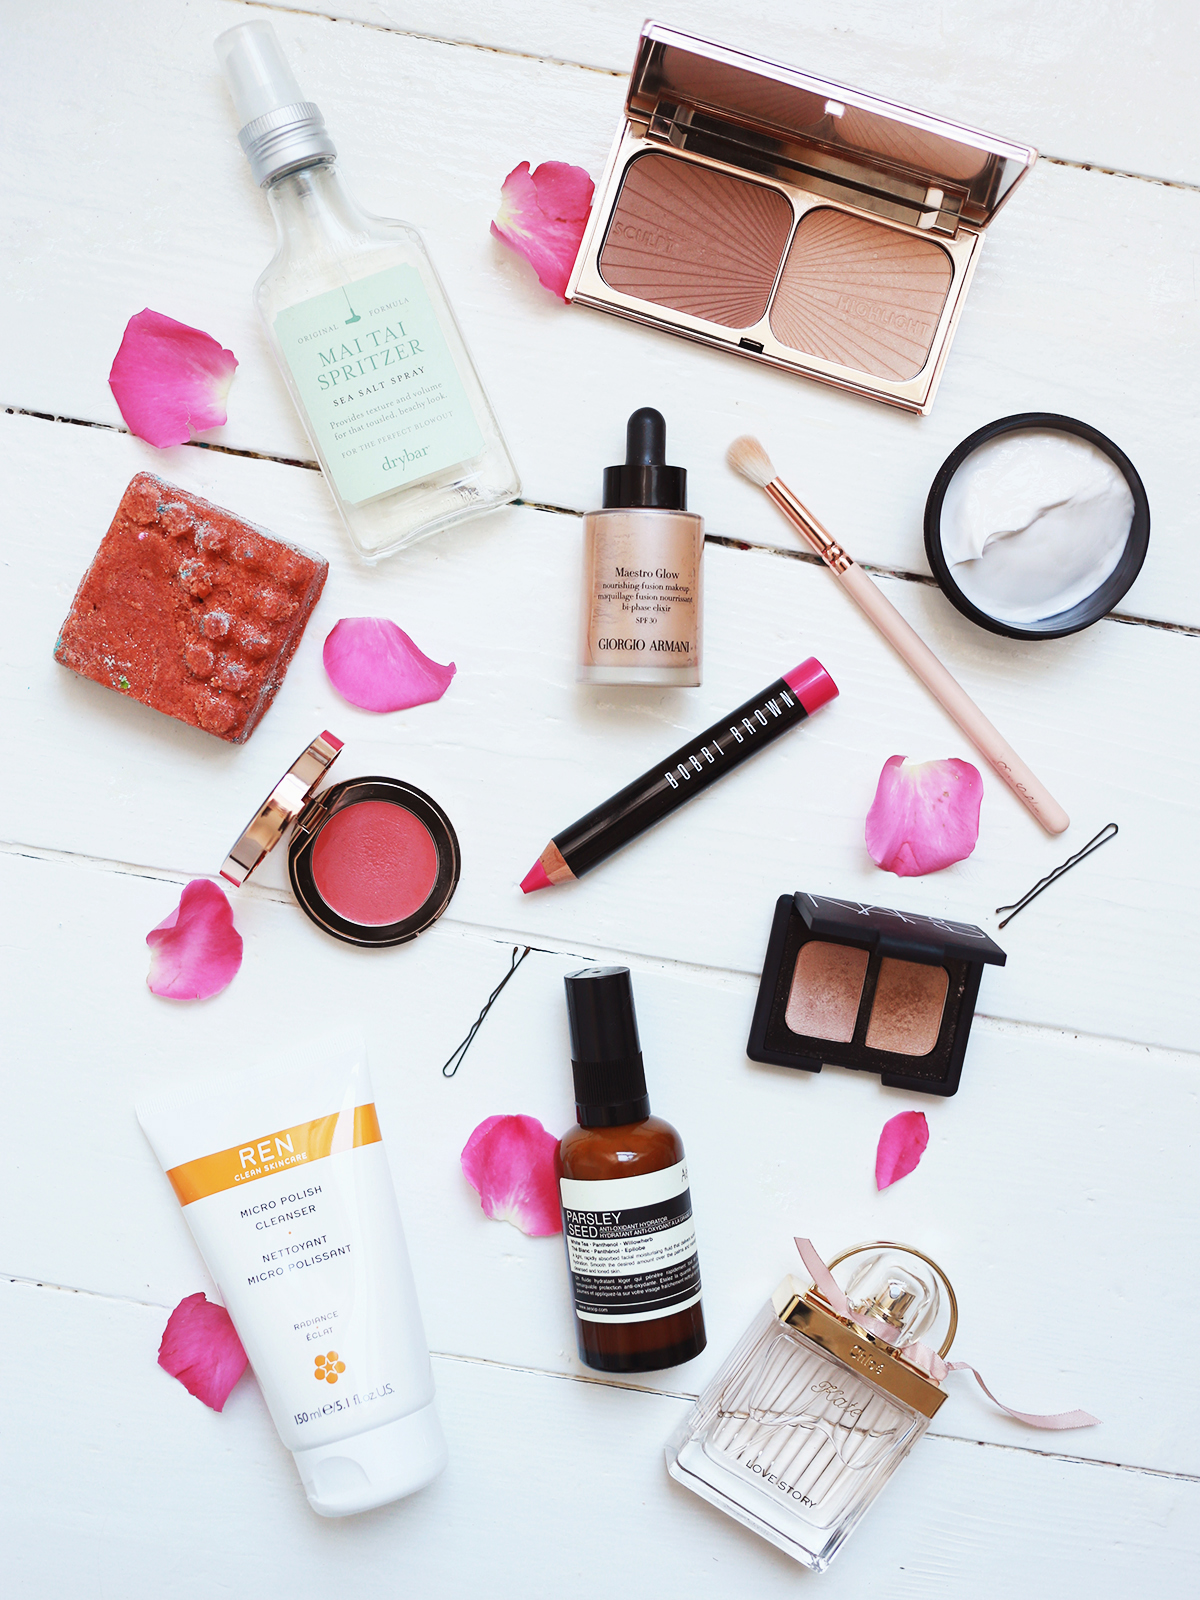 Makeup Essentials Must Haves From Makeup Artists Part 1: Spring Beauty Essentials.